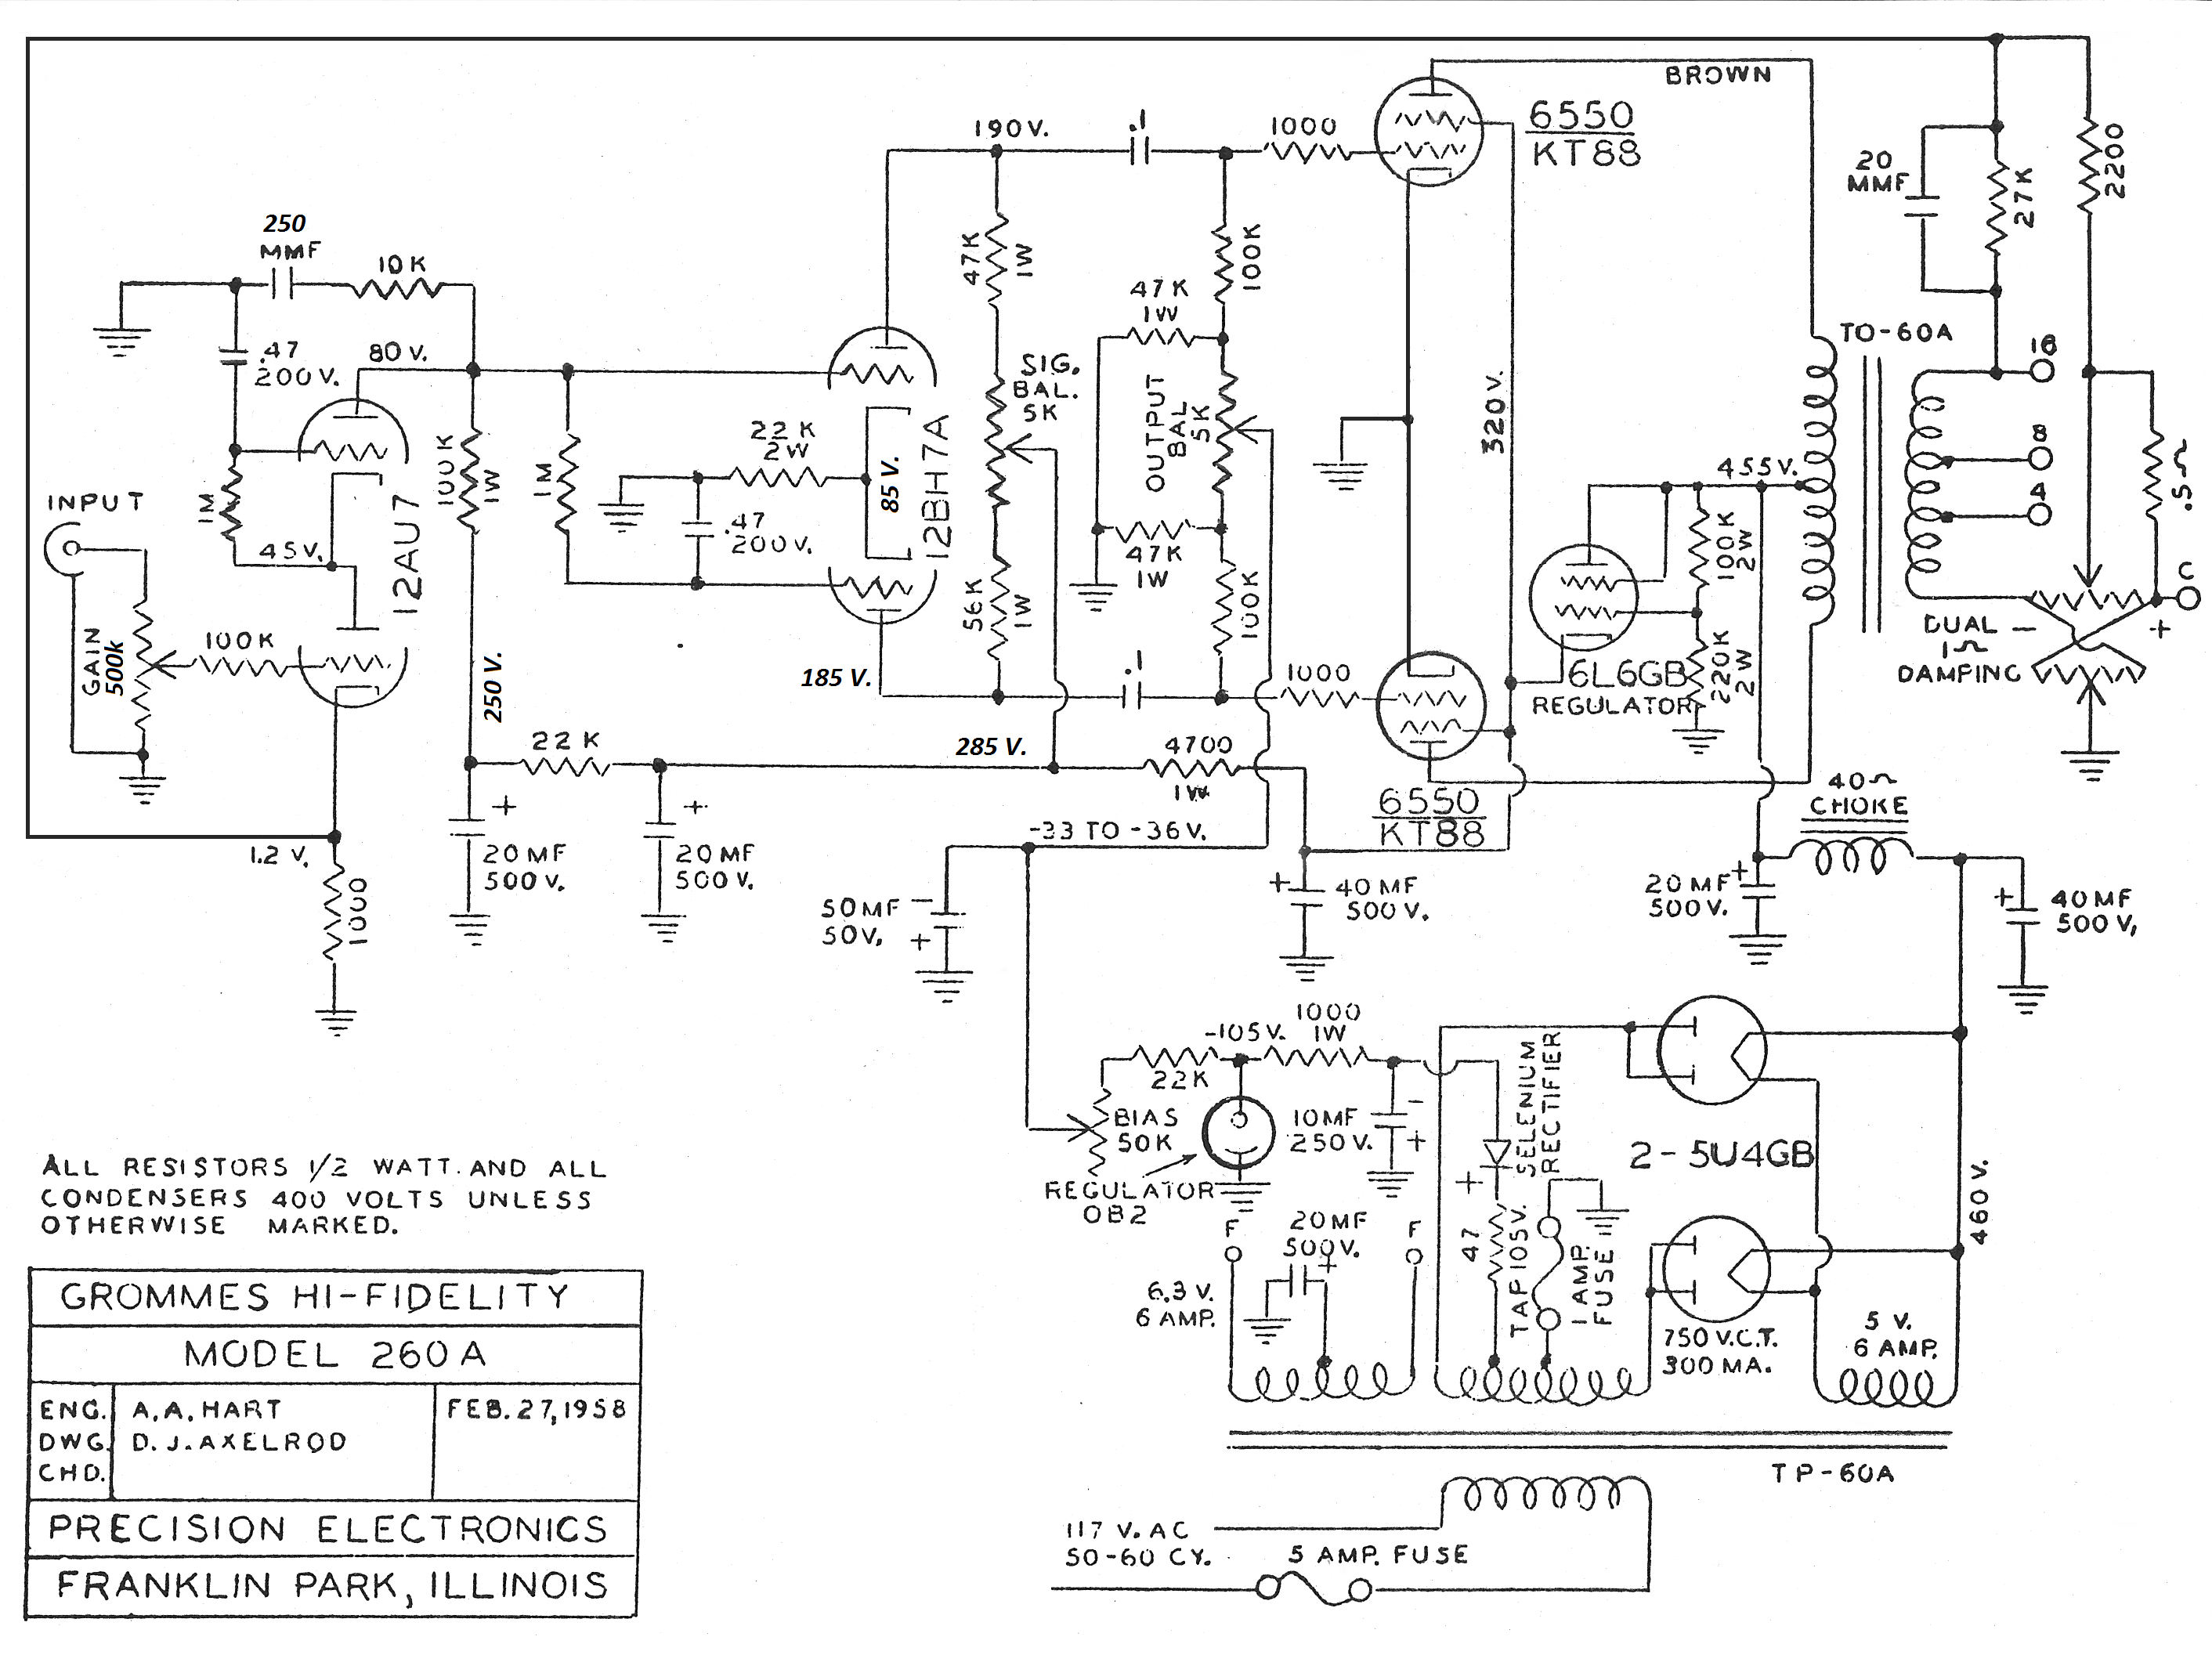 Trane Weathertron Thermostat Wiring Diagram Mercury together with Two Wire Thermostat Wiring Diagram additionally Rigid Industries Dually Wire Diagram in addition Wiring Diagram For Silvertone Guitar furthermore Honeywell Thermostat T8411r. on rth221b wiring diagram